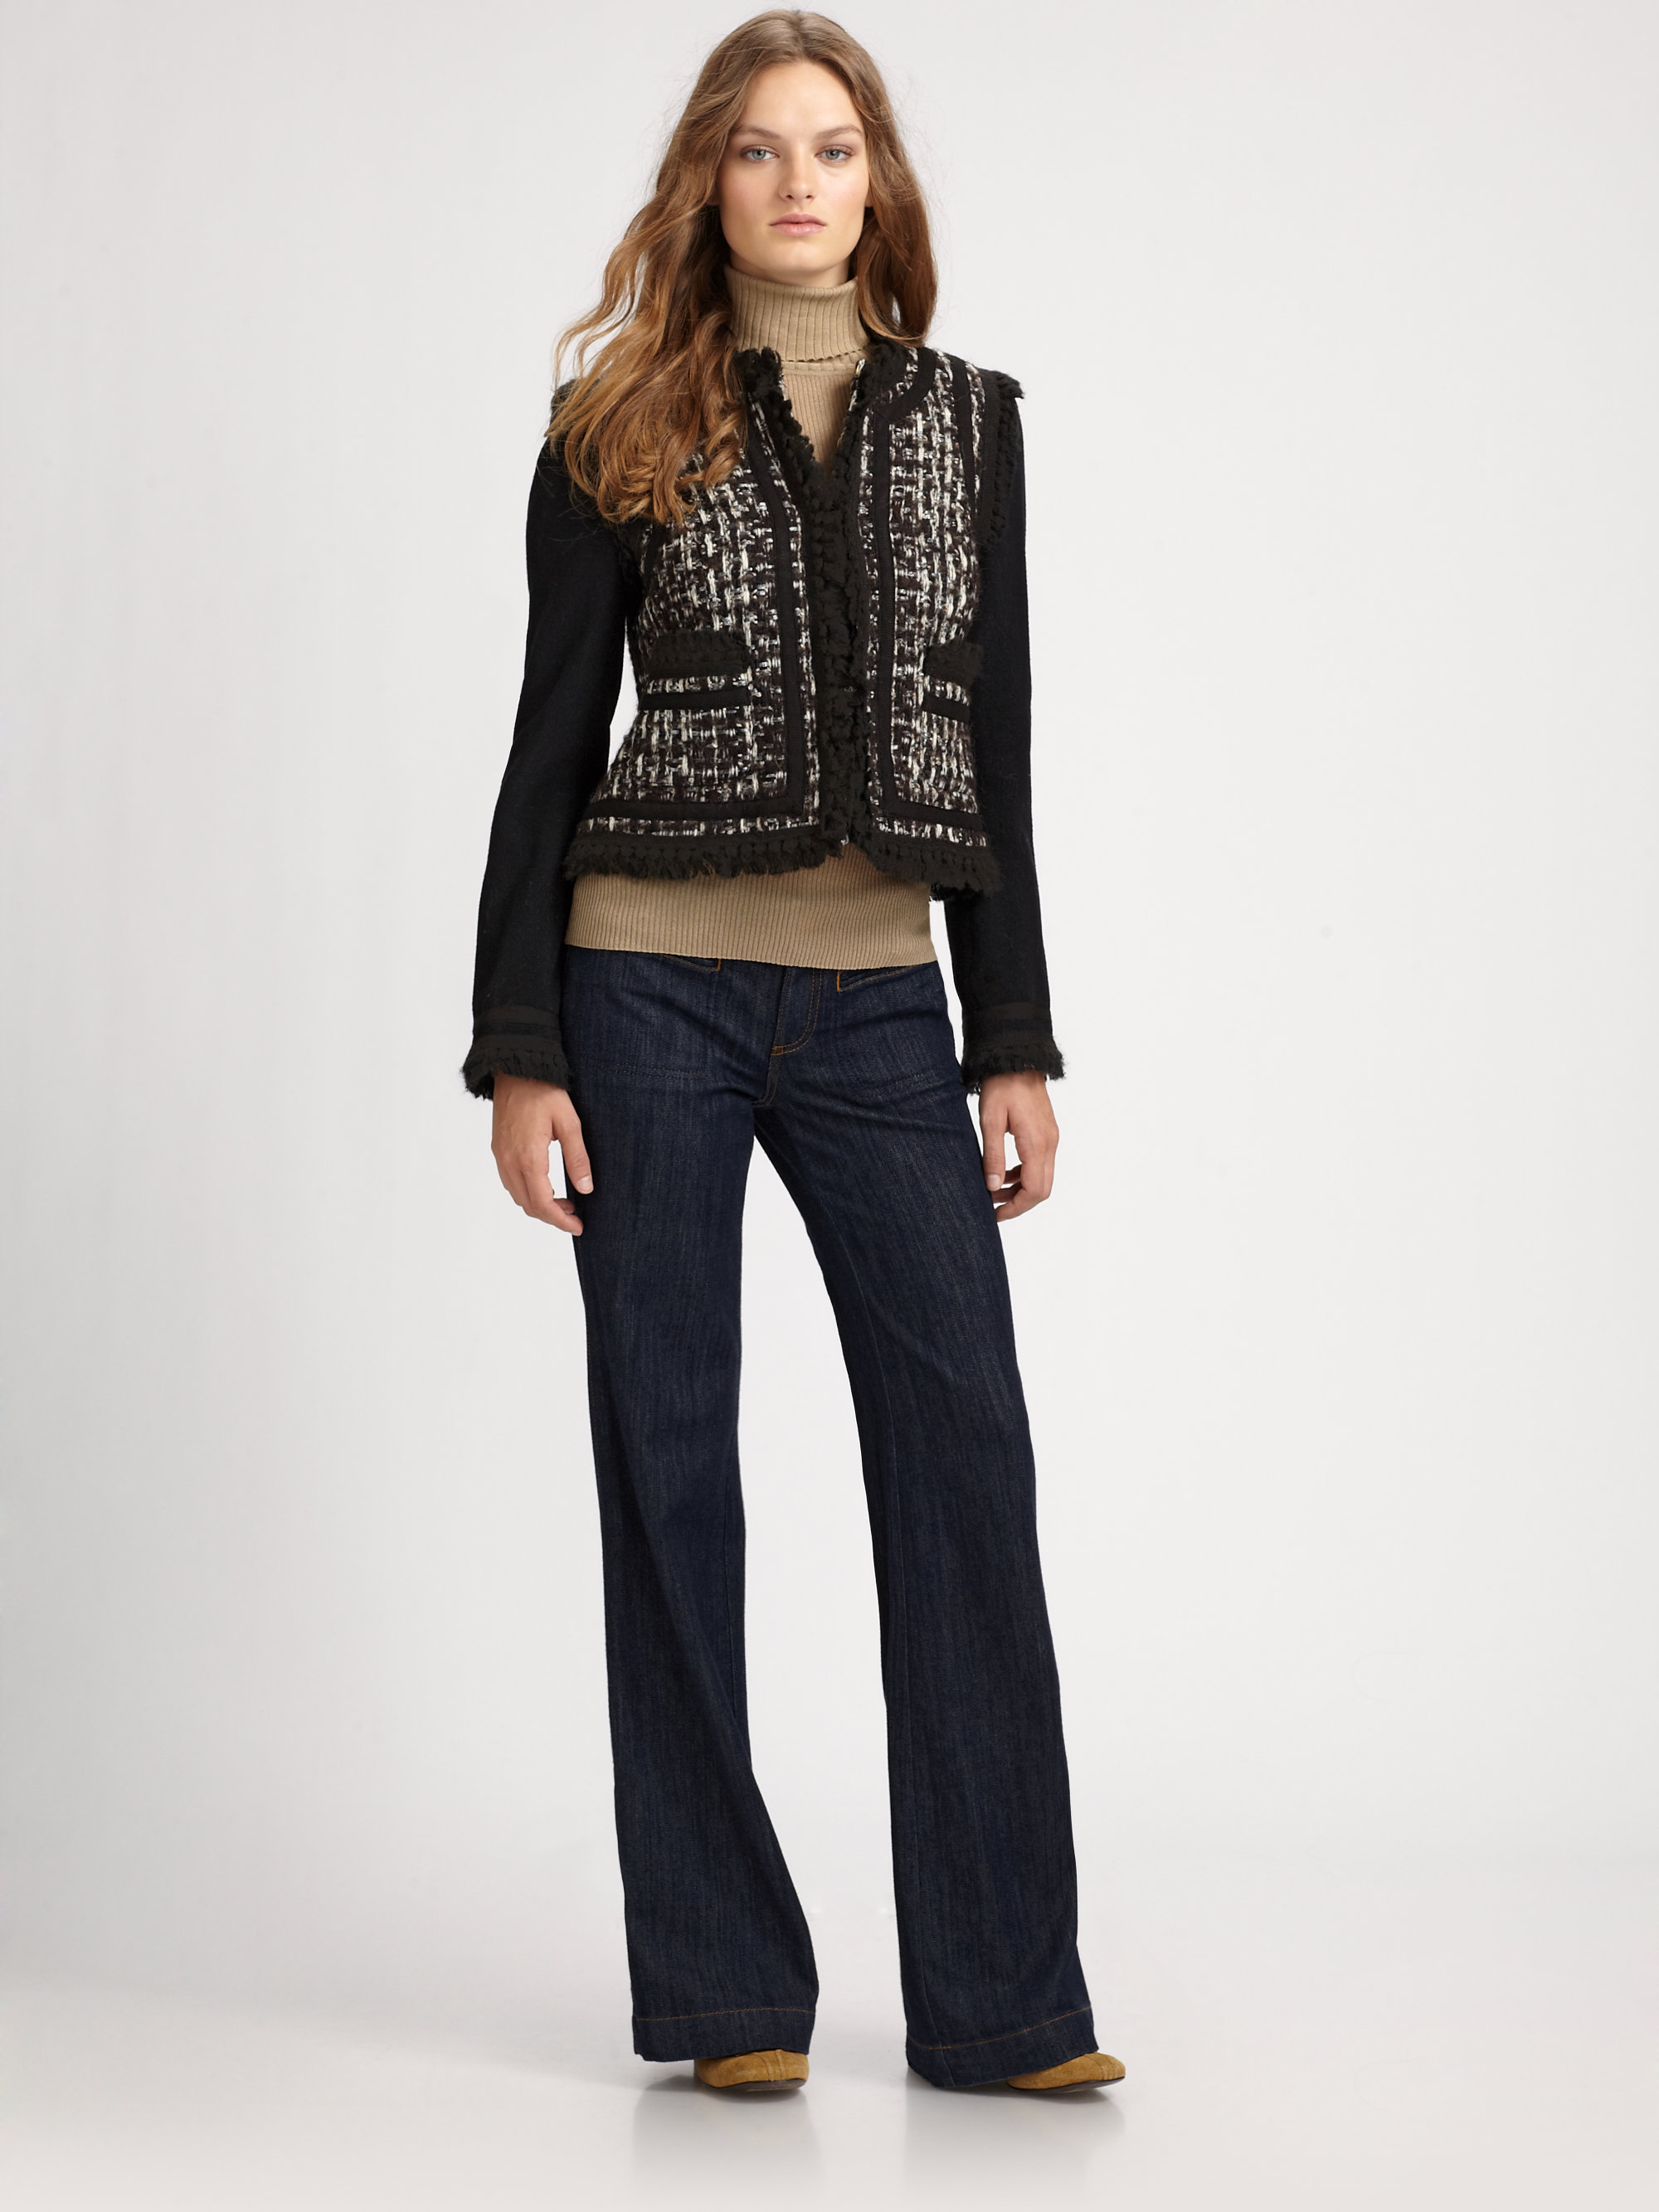 Tory Burch Carr Ribbon Cropped Tweed Jacket In Brown Lyst